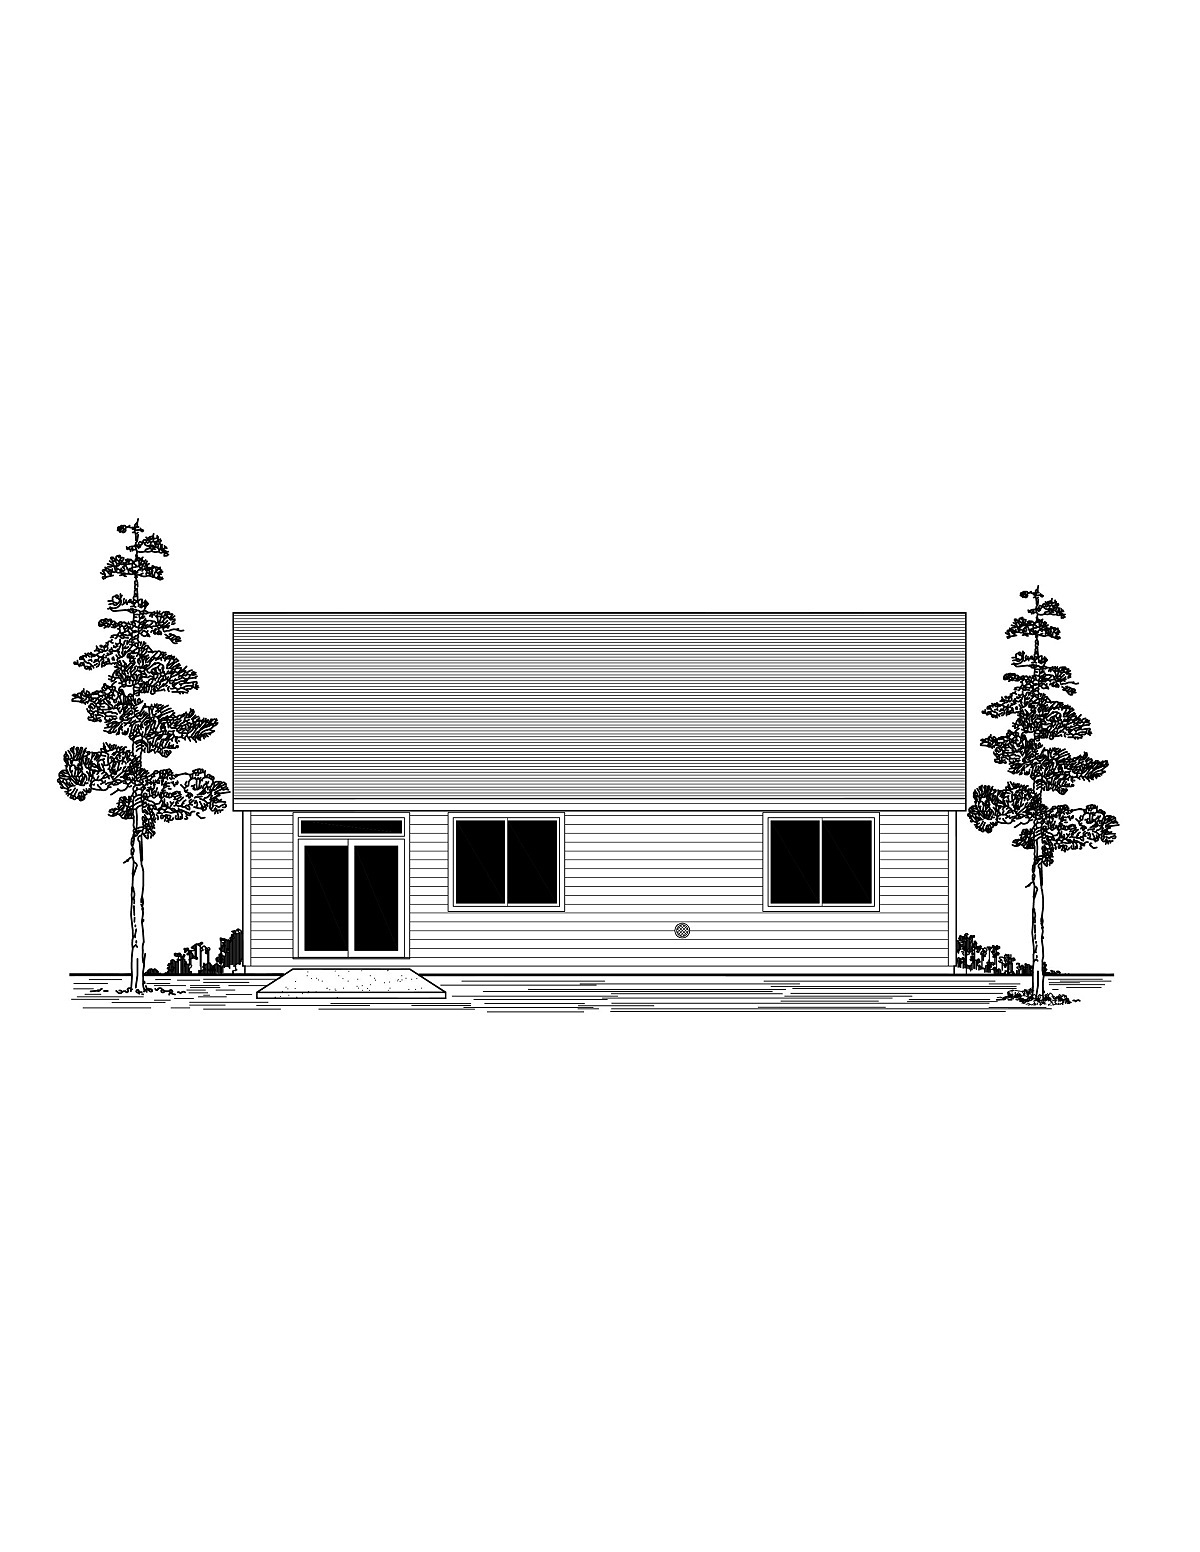 Craftsman, Ranch, Traditional House Plan 44412 with 3 Beds, 2 Baths, 2 Car Garage Rear Elevation